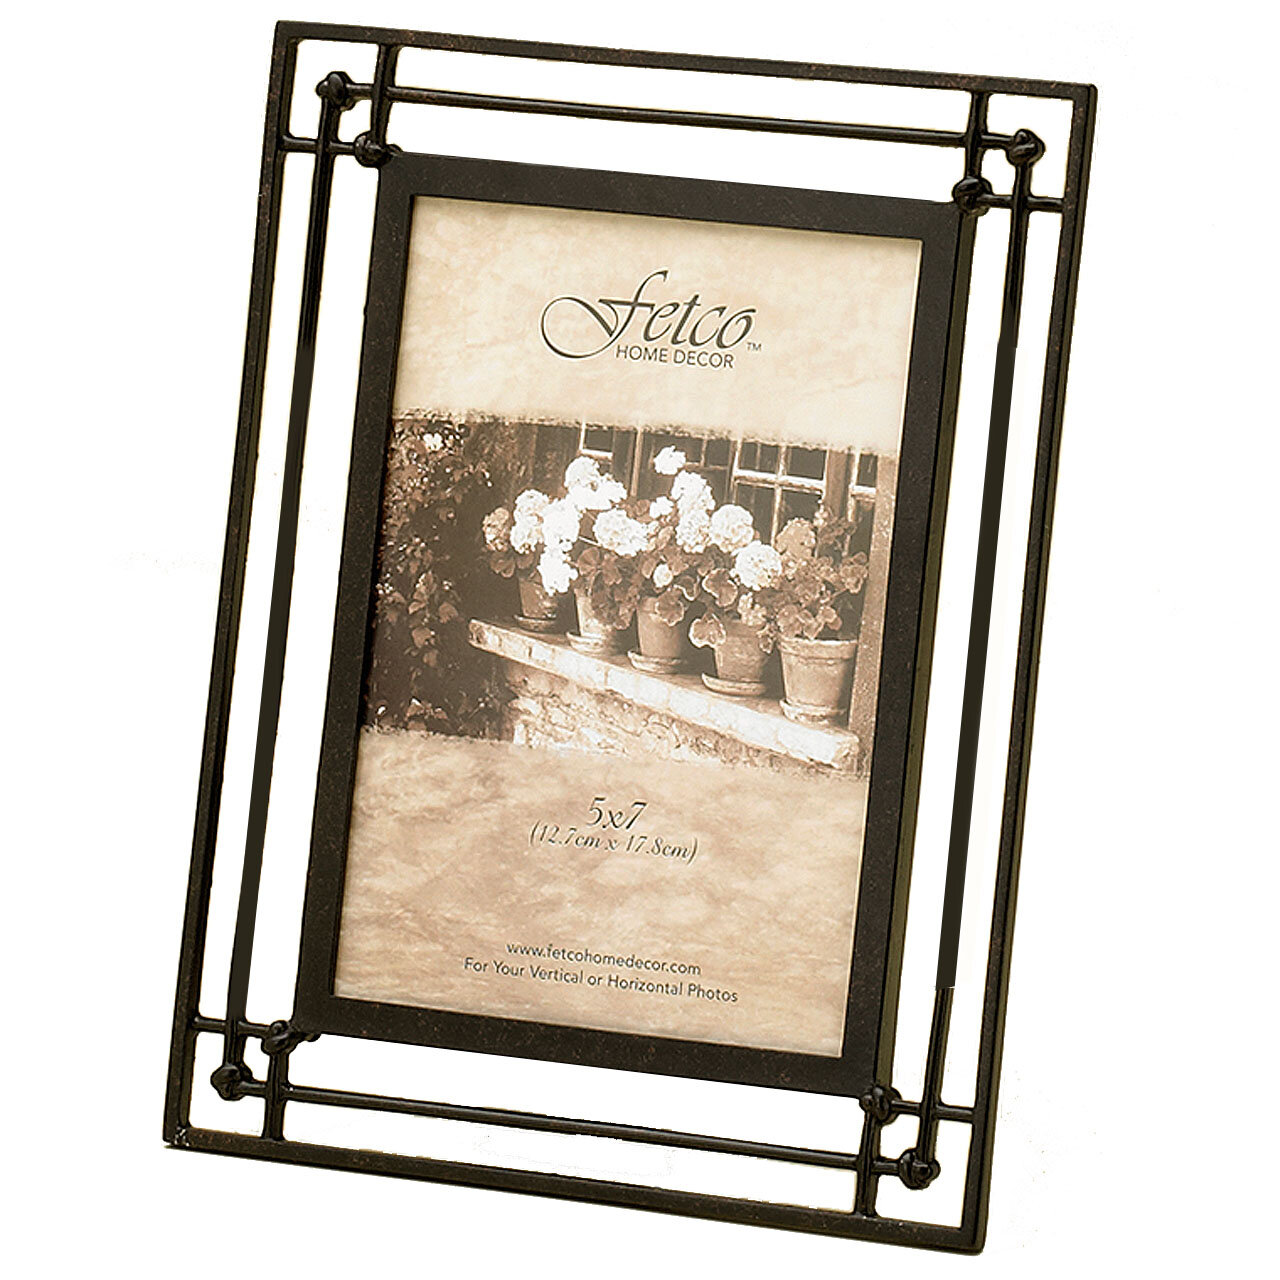 Fetco Home Decor Tuscan Courtland Picture Frame